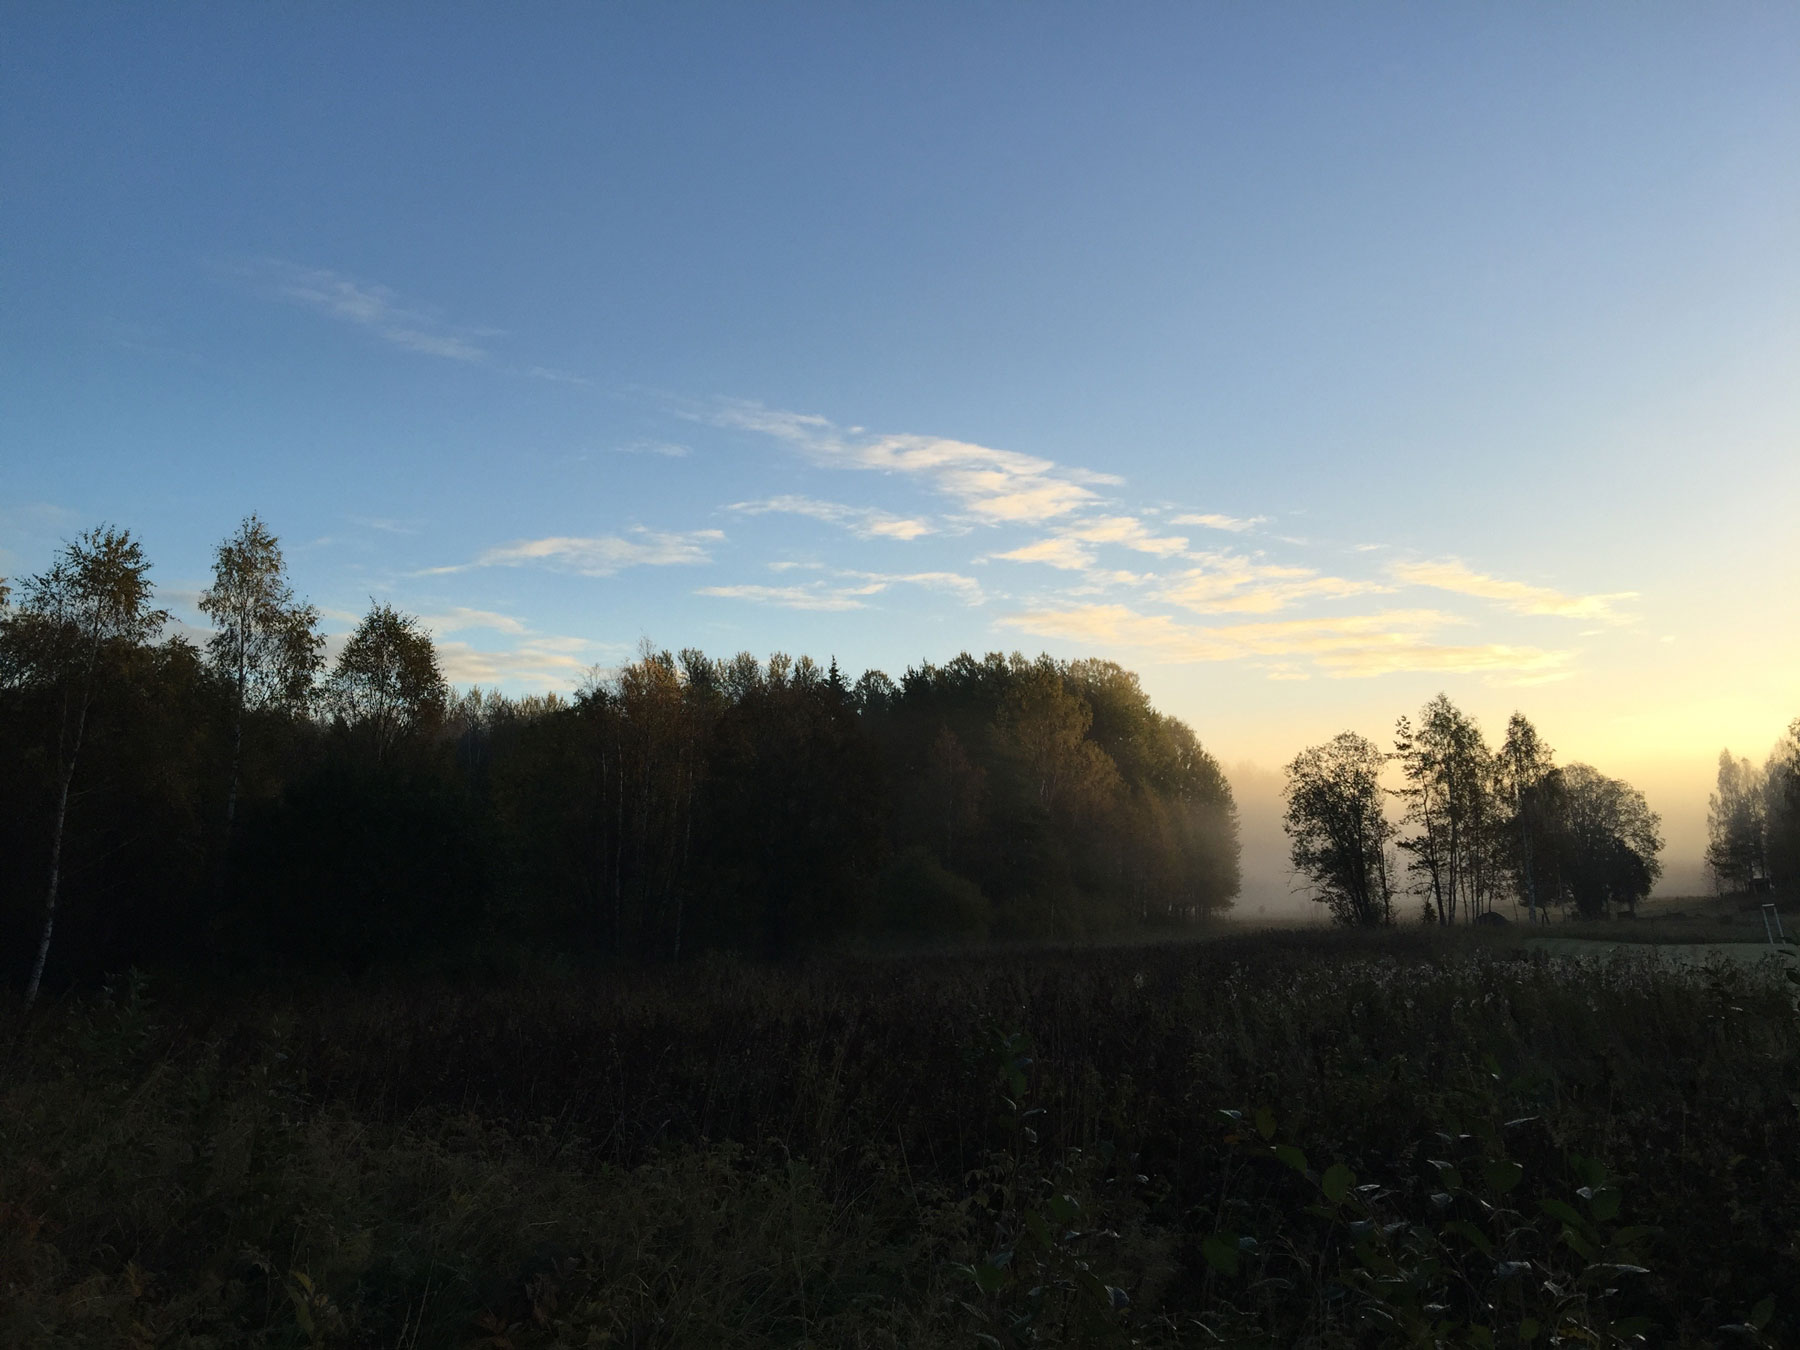 fog-trees-morning-surahammar-life-coach